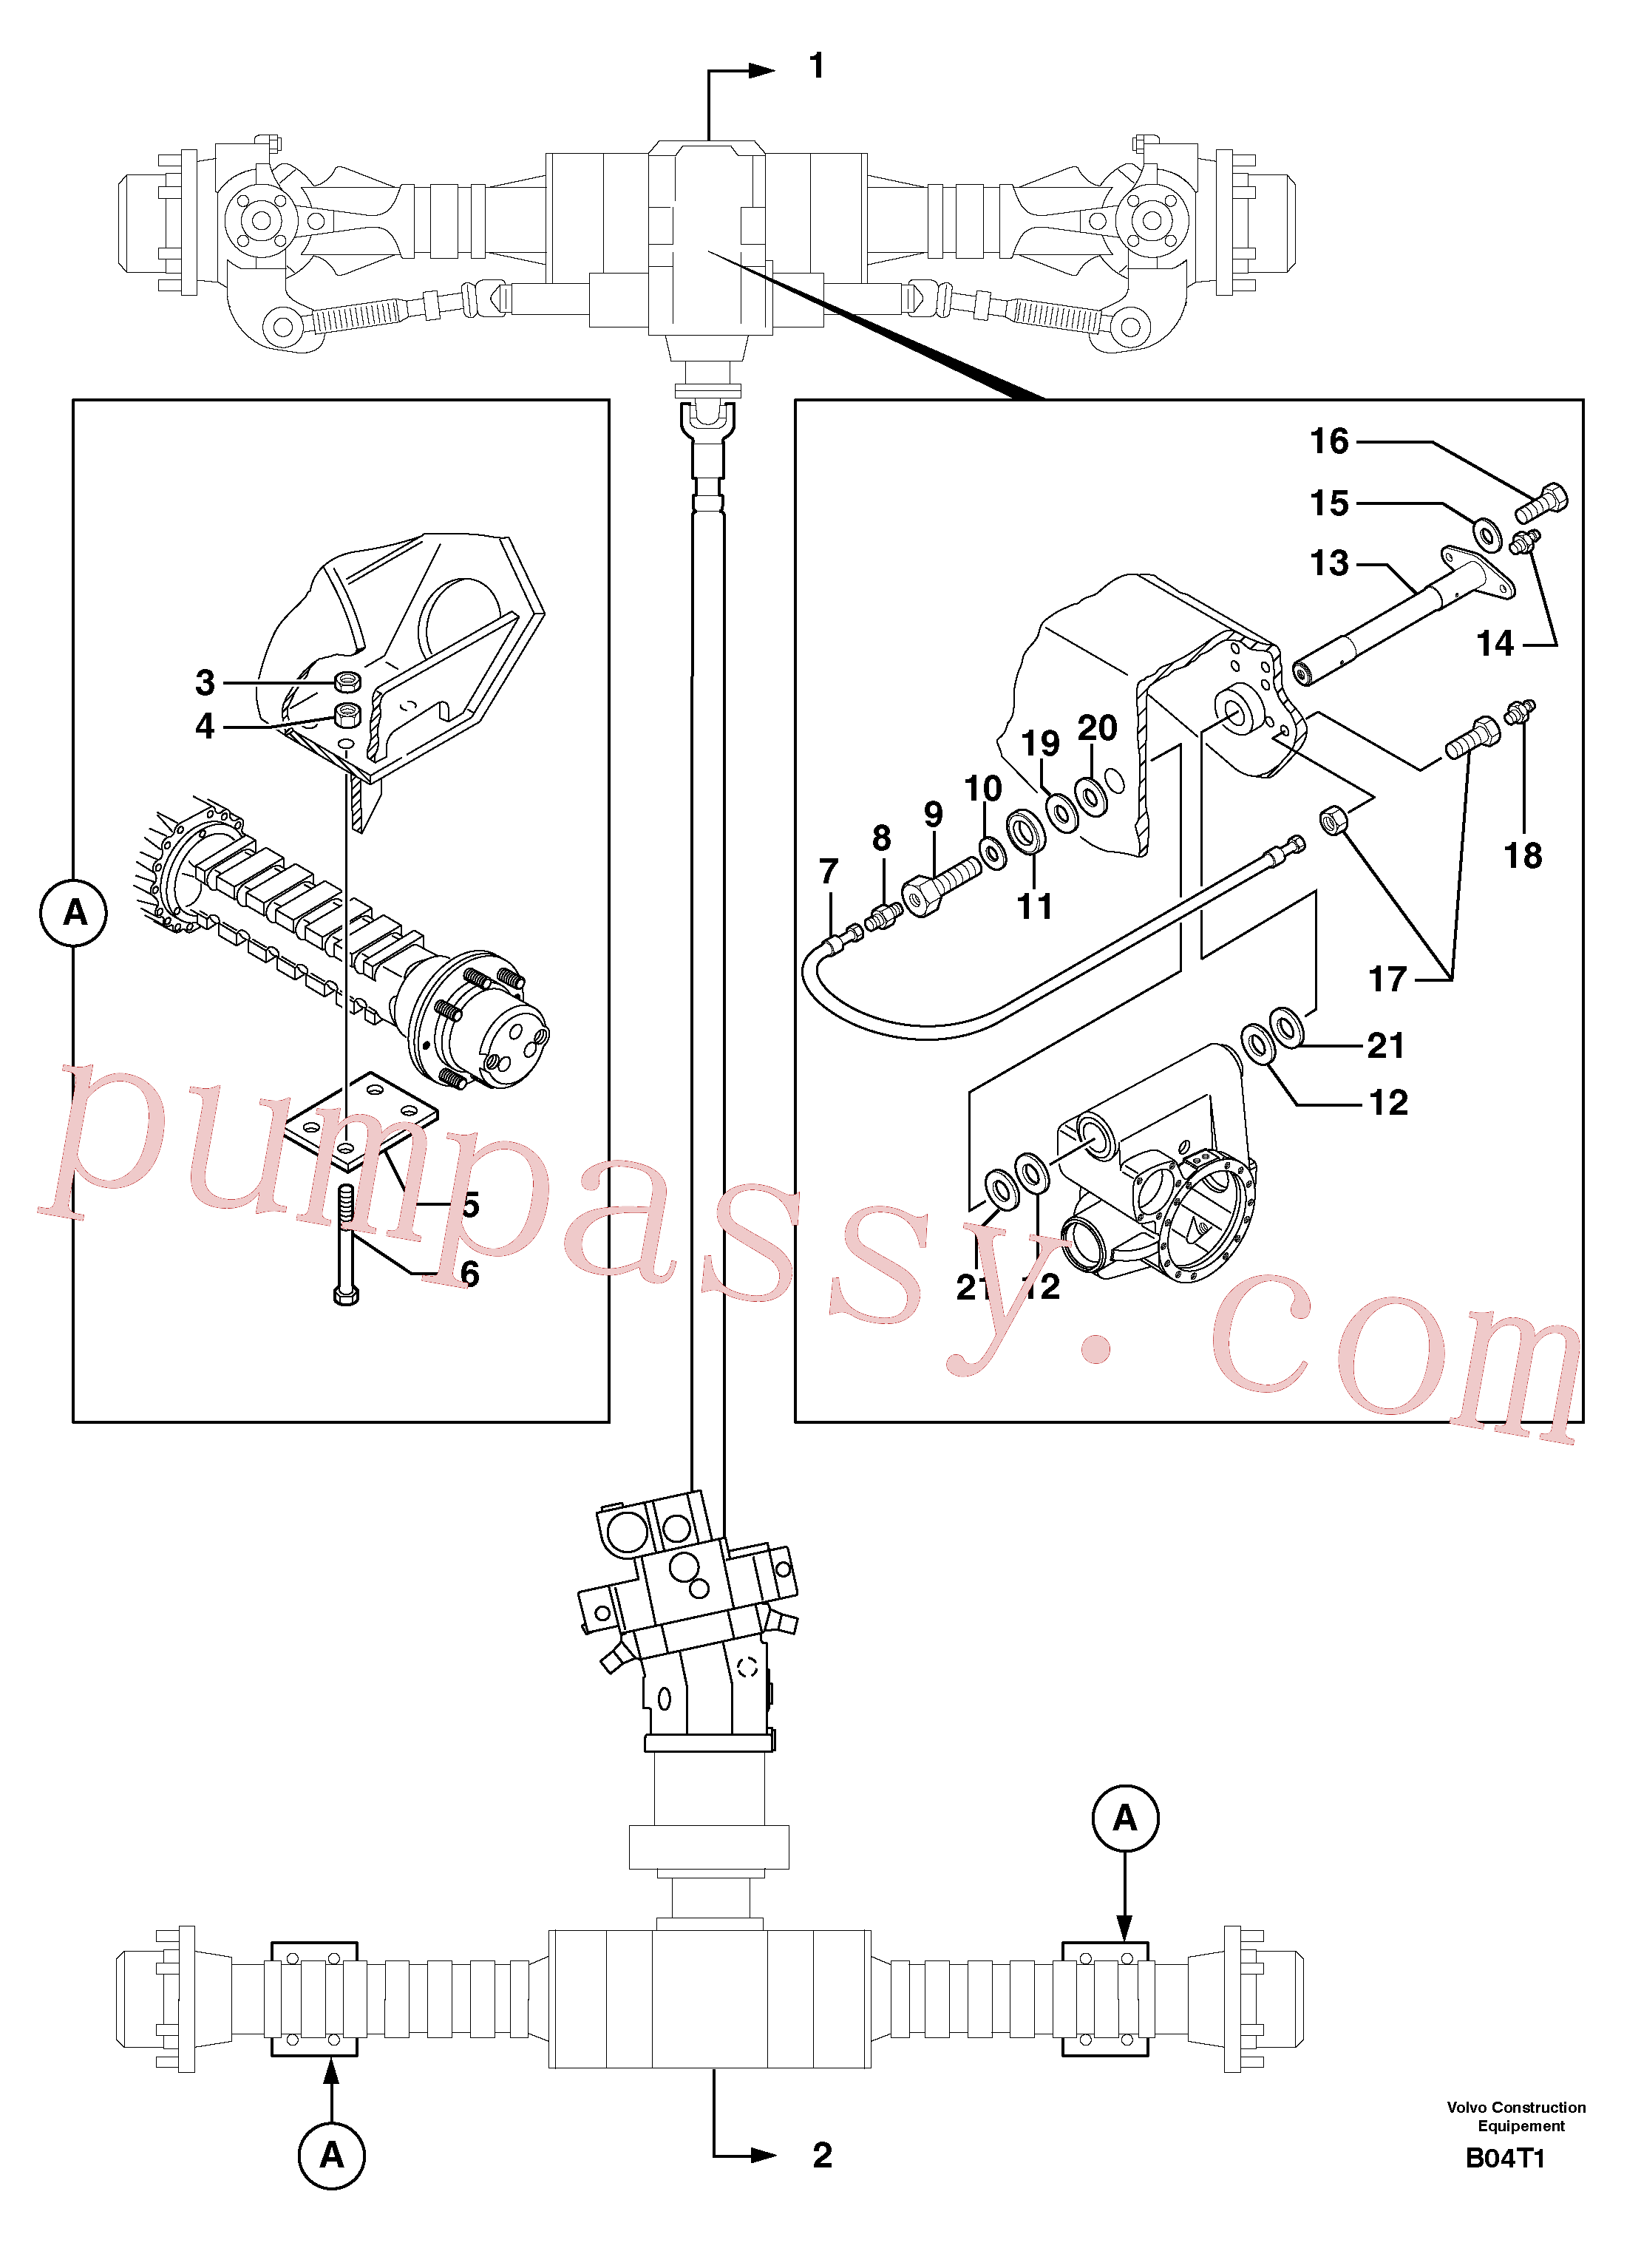 PJ5530103 for Volvo Axle cradles and mountings(B04T1 assembly)